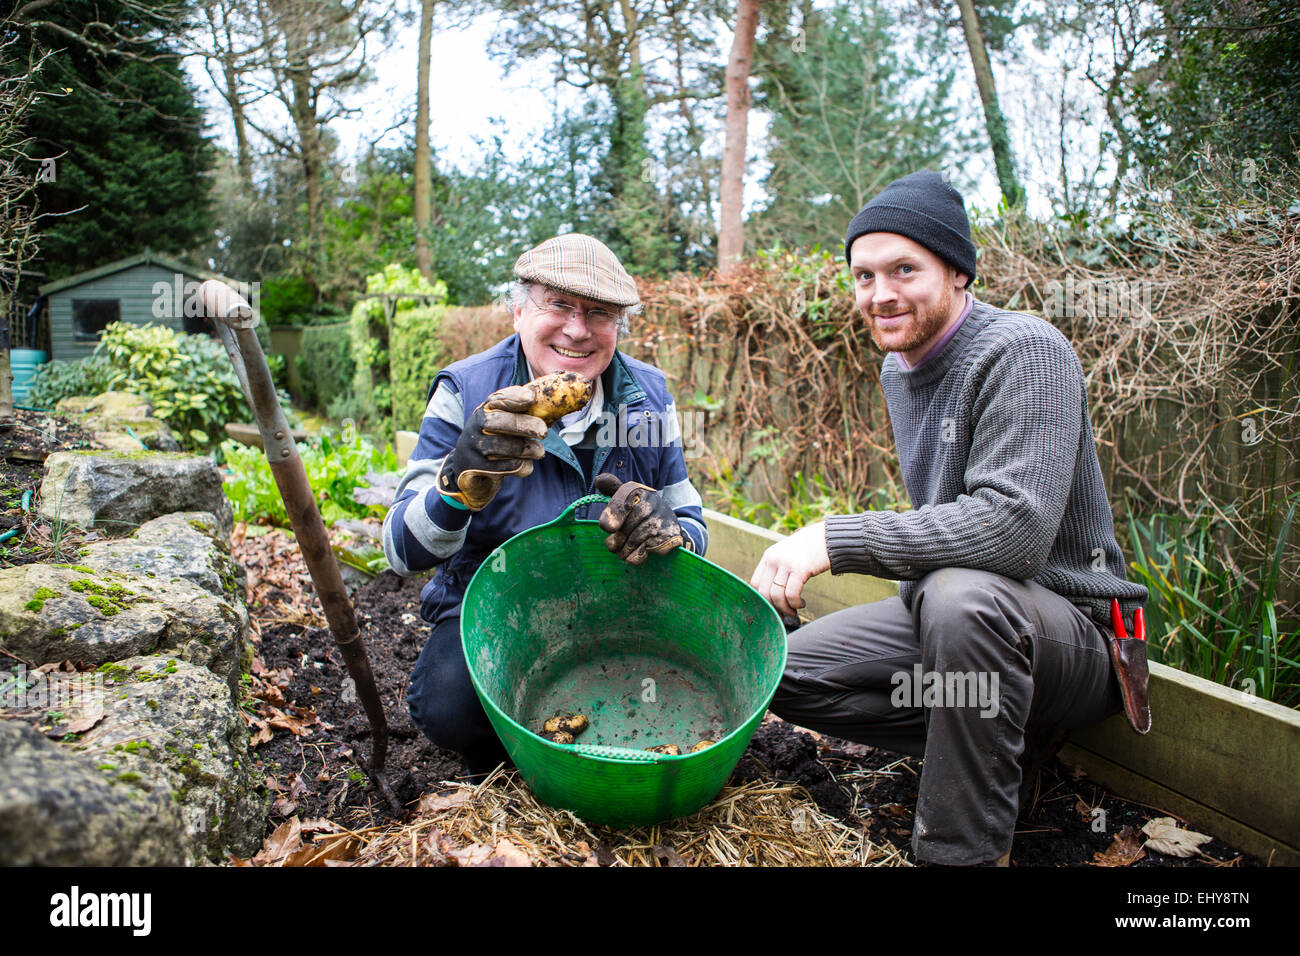 Two men harvesting potatoes, Bournemouth, County Dorset, UK, Europe - Stock Image